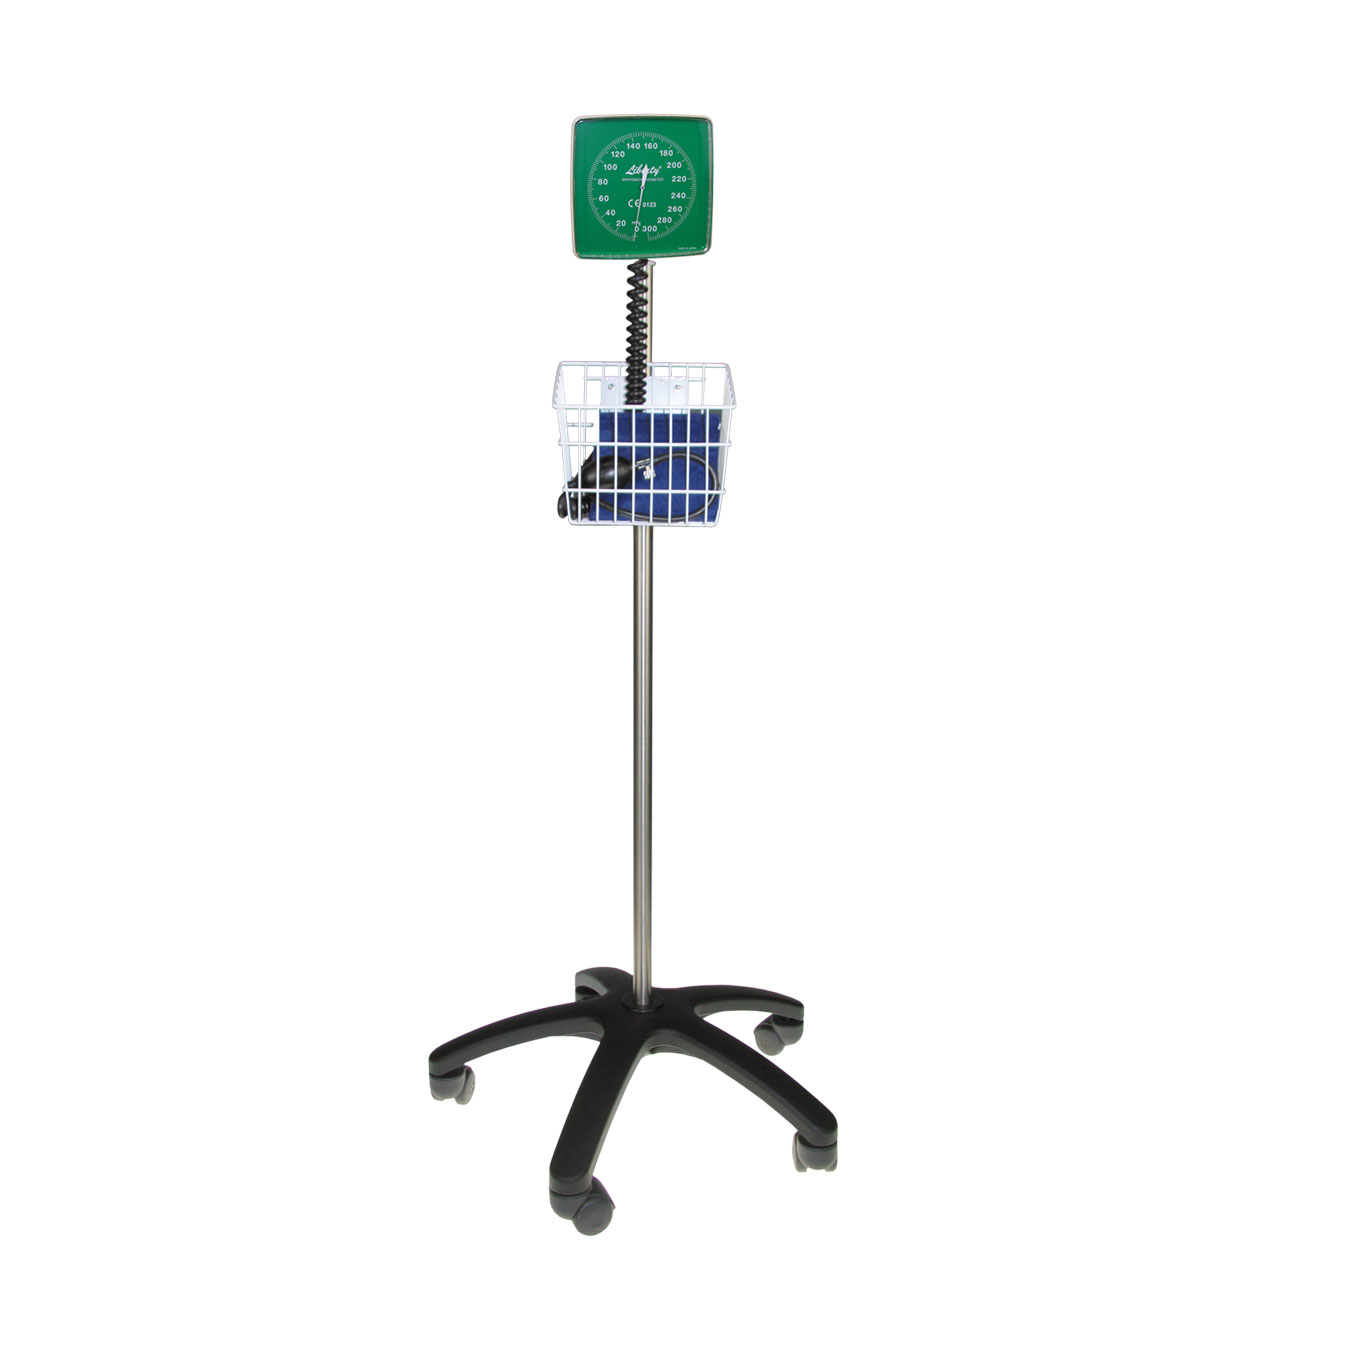 STMALW_1_Mobile-Aneroid-Sphyg-with-Basket-Light-Weight-Base